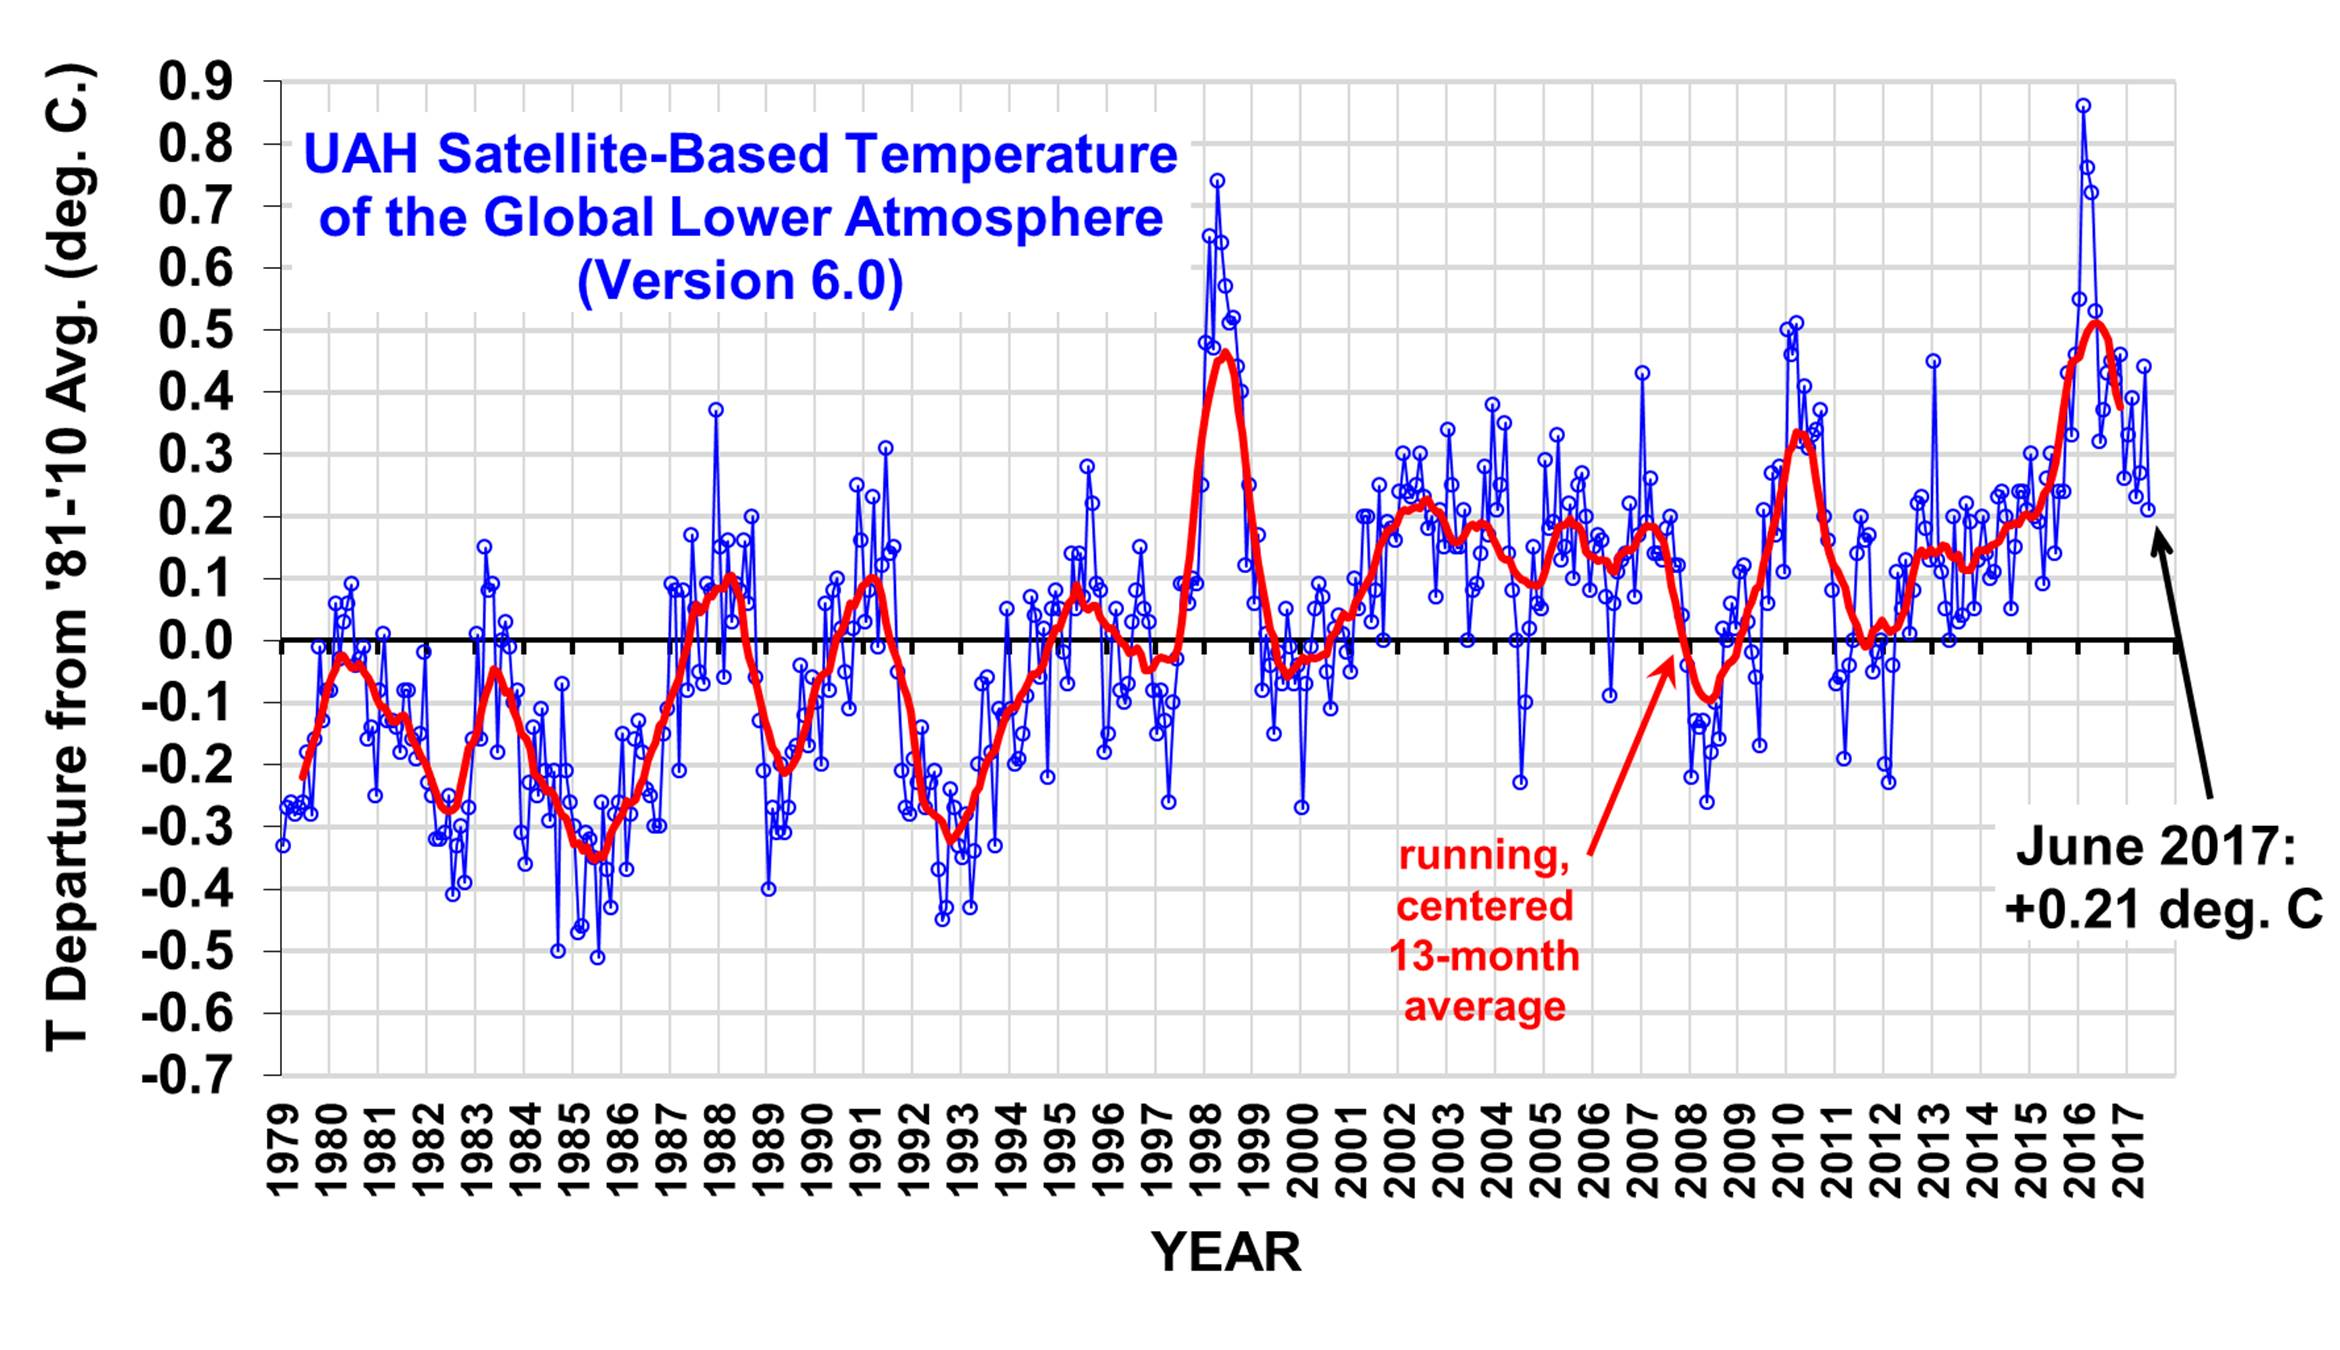 Cooling Uah Reports The Lowest Global Temperature Anomaly